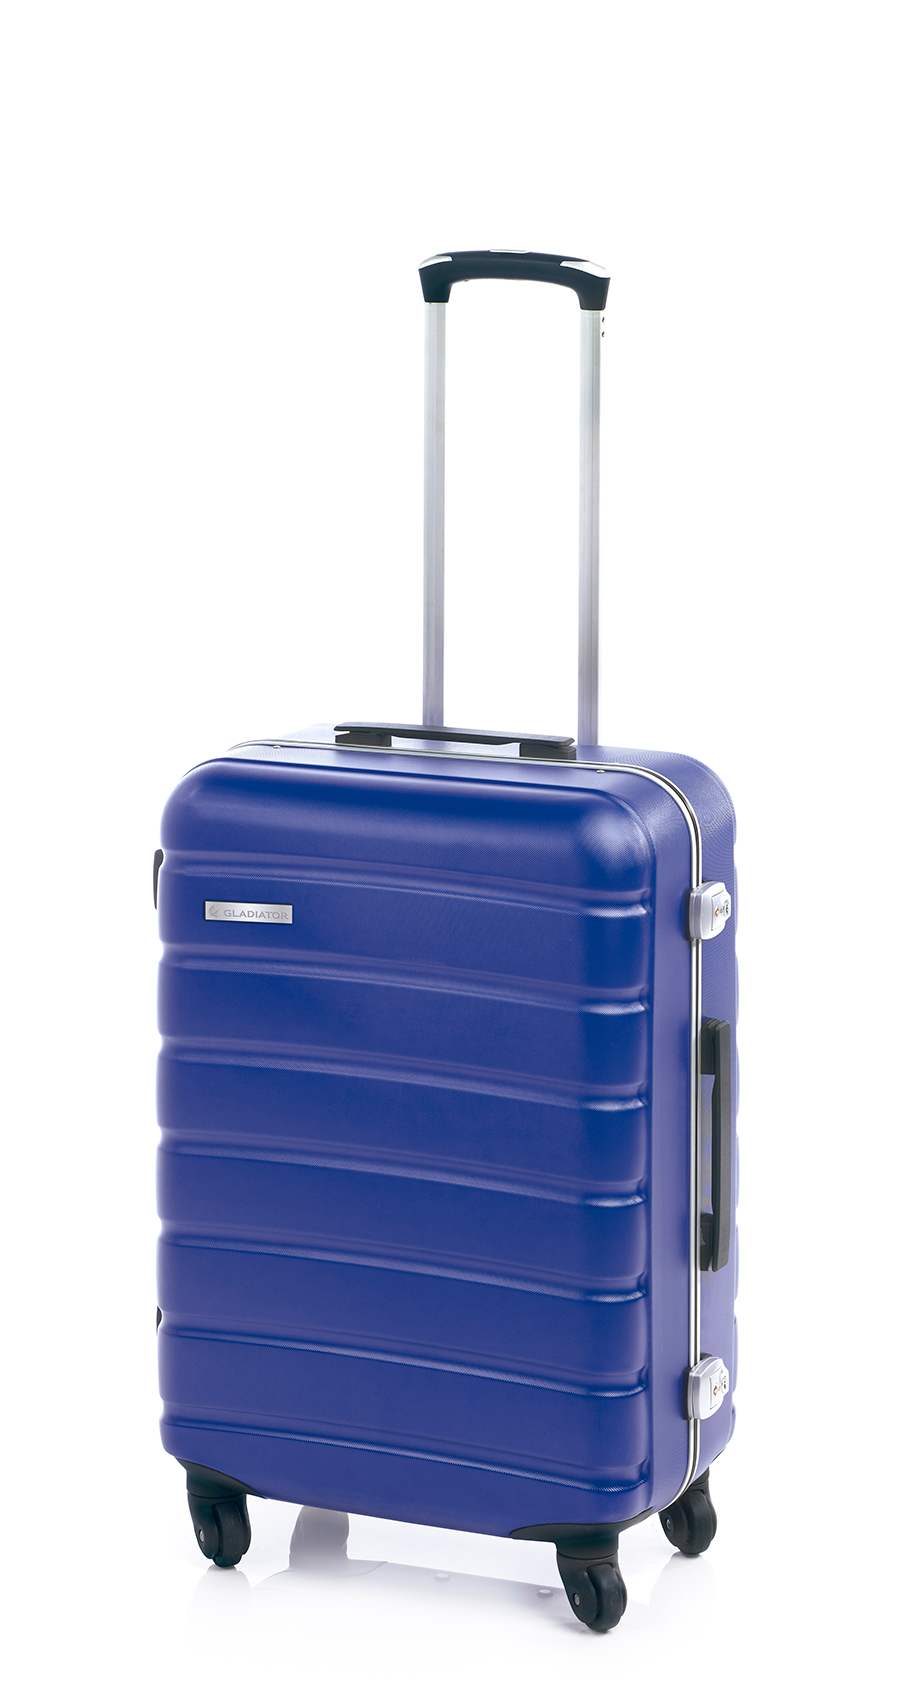 Best Travel Luggage Size